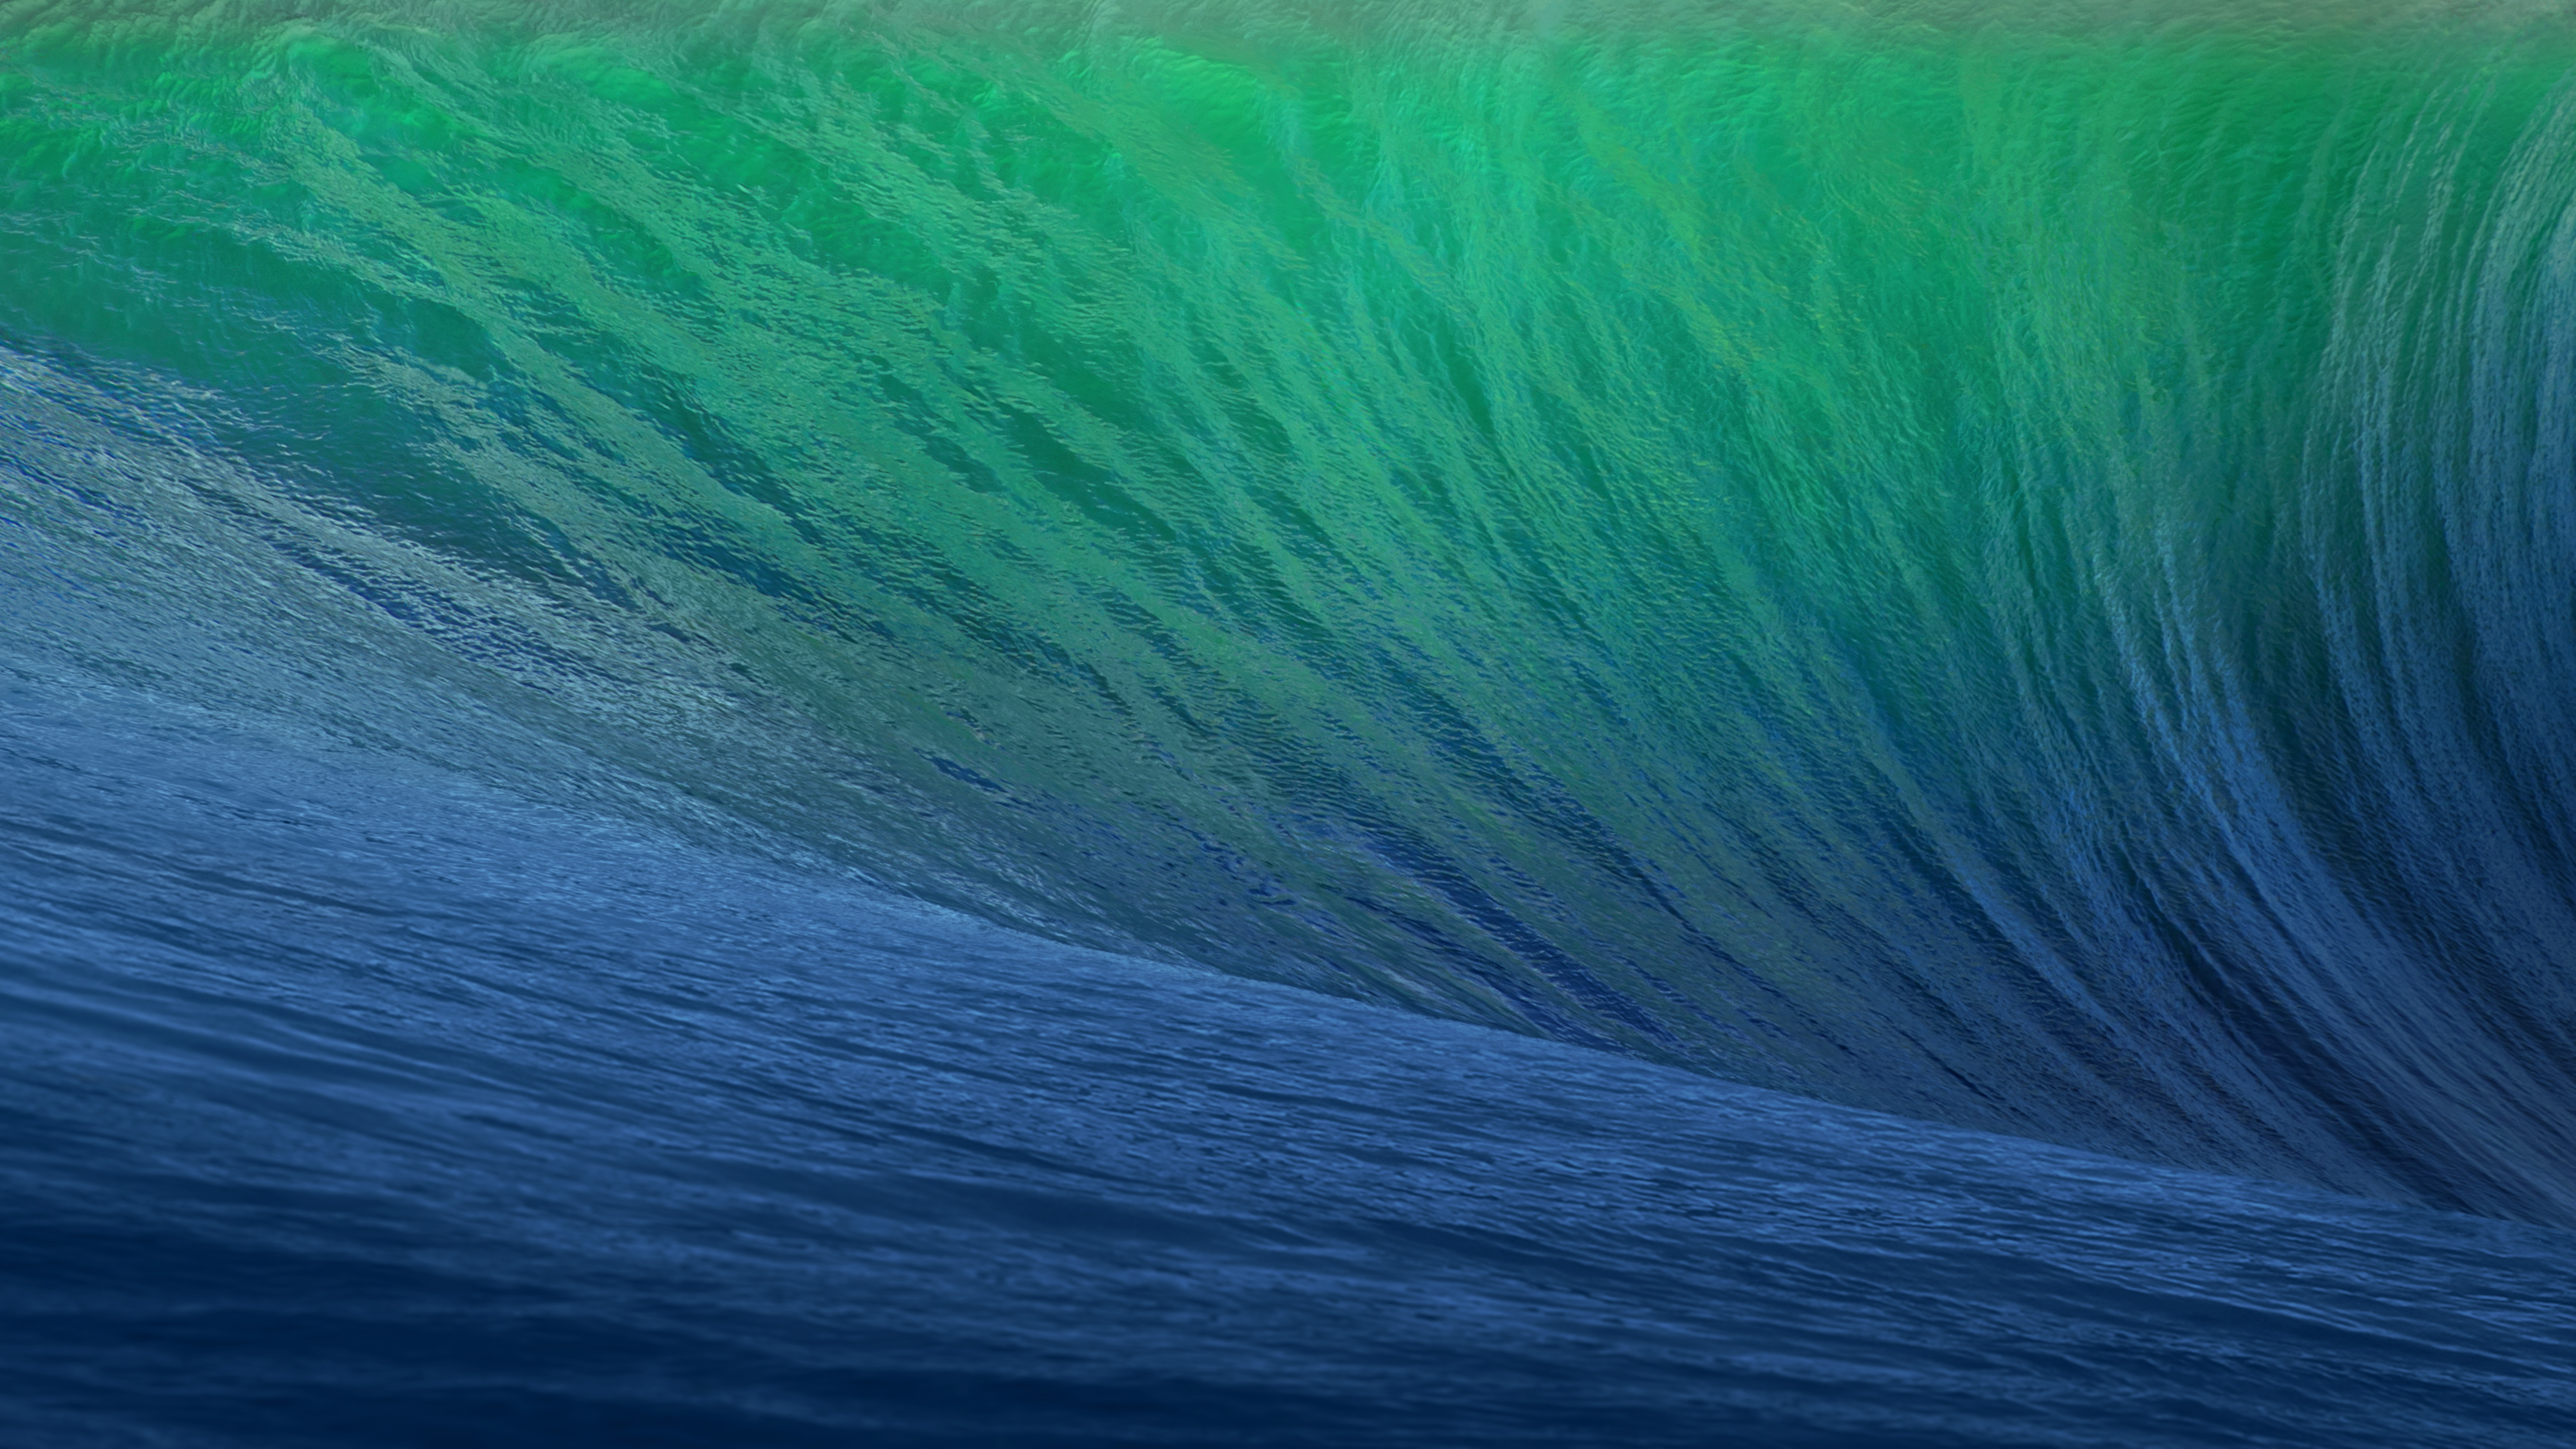 Apple OS X Mavericks Wallpaper OS X Mavericks   Wallpaper